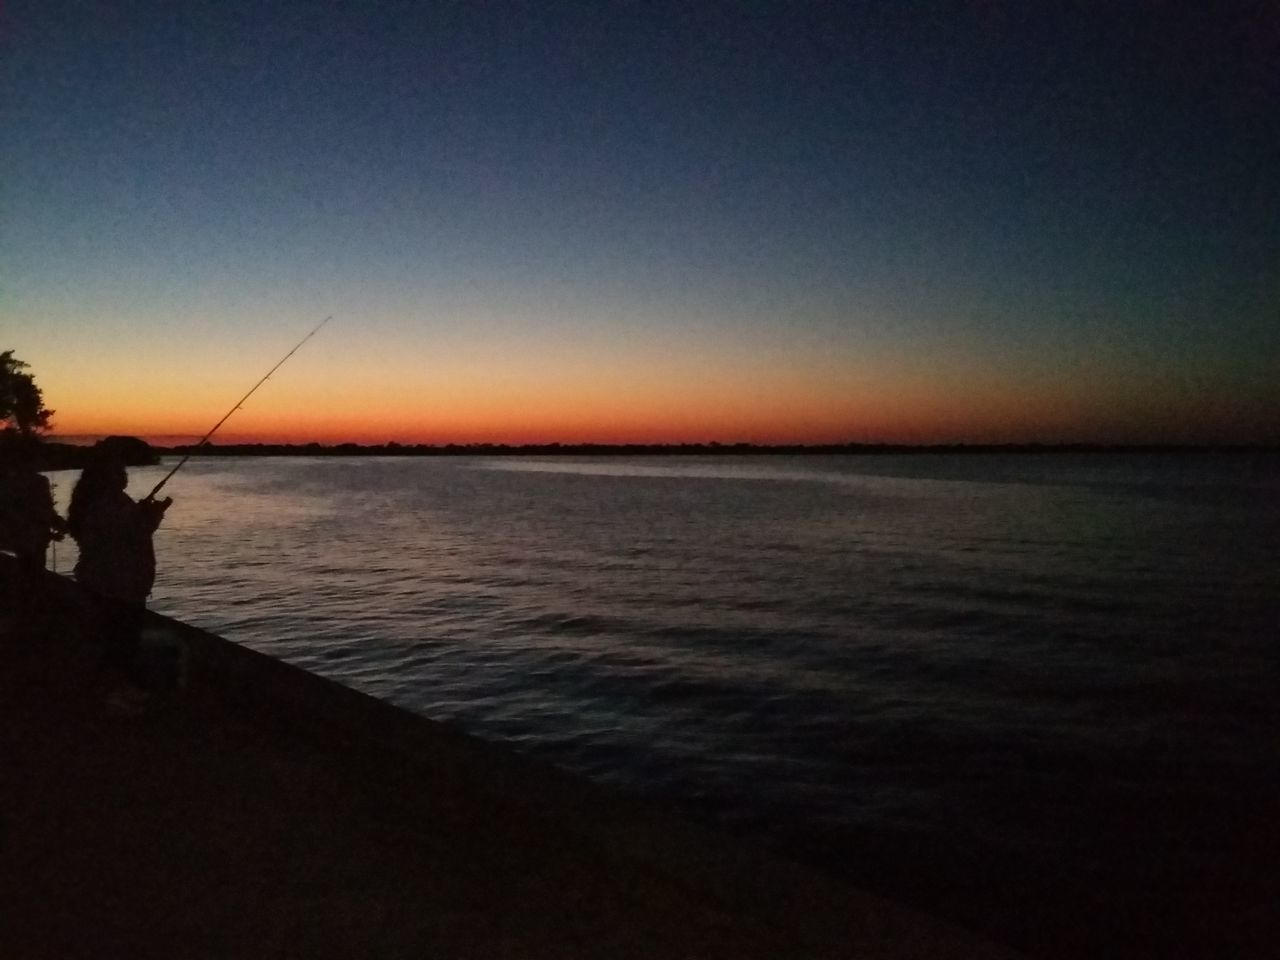 fishing, sea, fishing pole, fishing rod, water, tranquil scene, horizon over water, nature, sunset, real people, one person, tranquility, scenics, standing, weekend activities, idyllic, silhouette, beauty in nature, clear sky, leisure activity, outdoors, fishing tackle, men, sky, full length, day, people